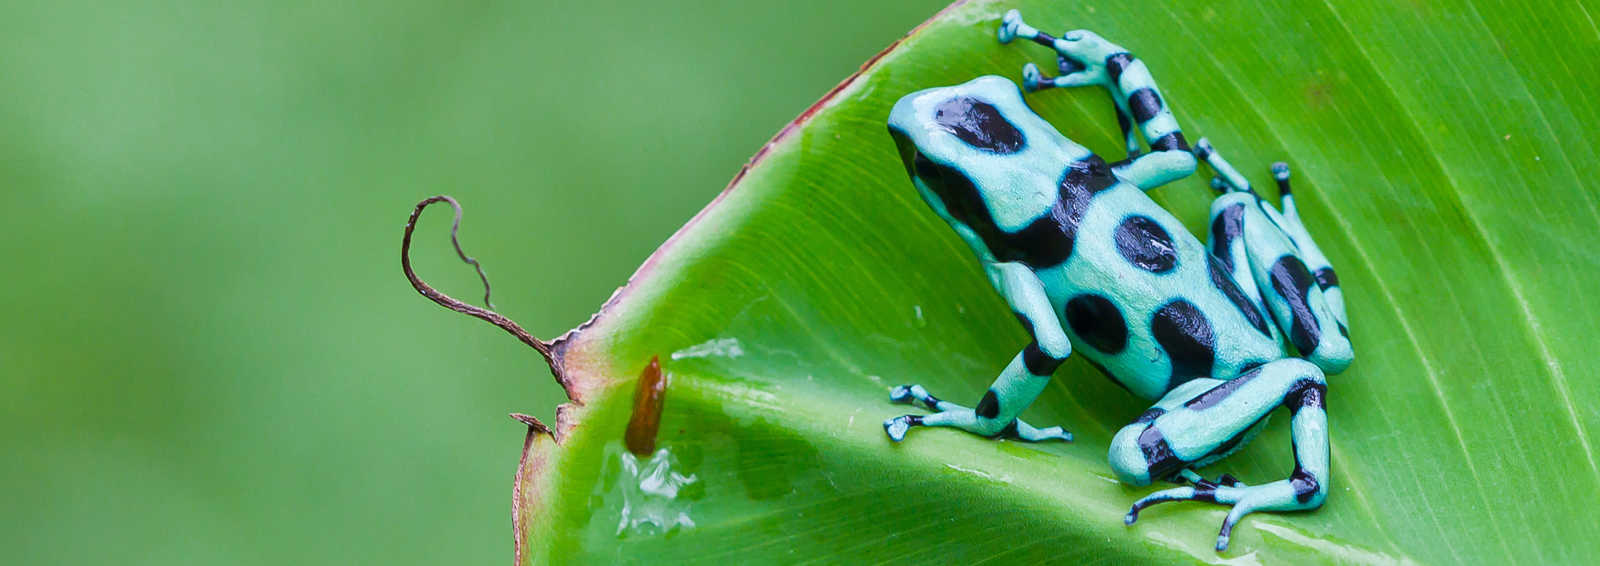 Green and Black Poison Dart Frog (Dendrobates auratus), Costa Rica